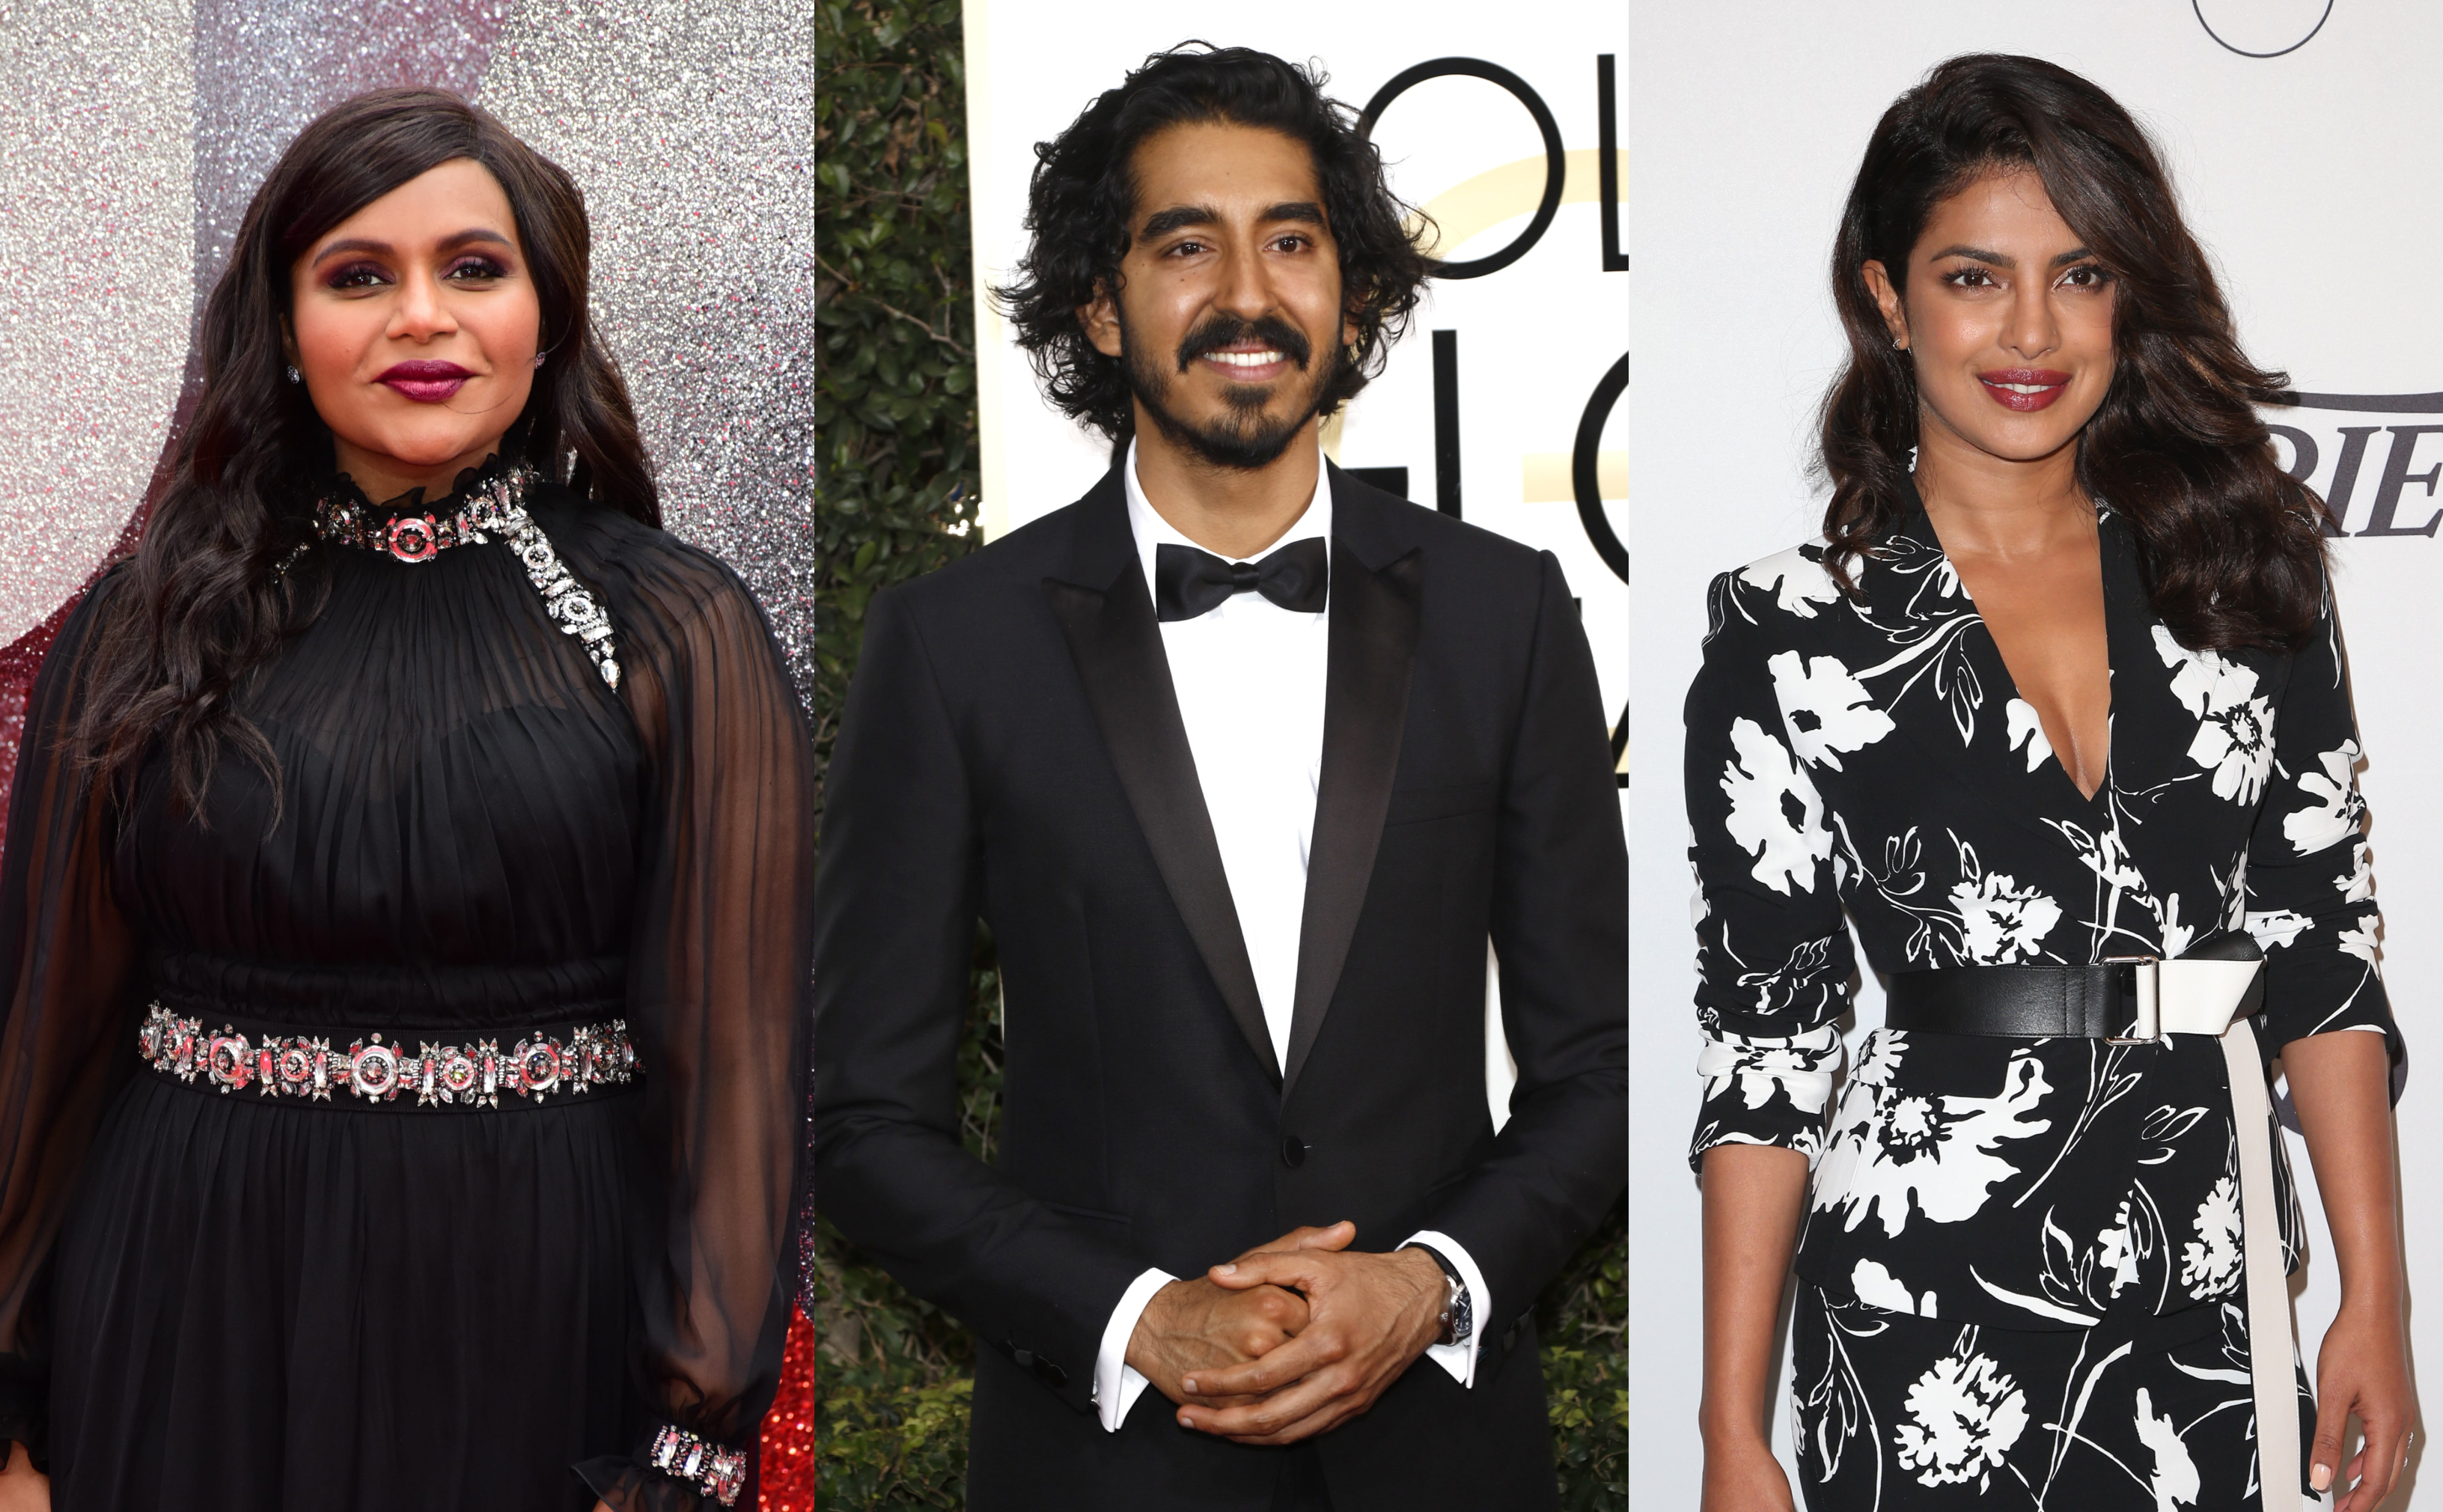 In honor of India's Independence Day, we bring you a list of the ten most famous celebrities of Indian origin who have reached international stardom. (Photo: WENN)